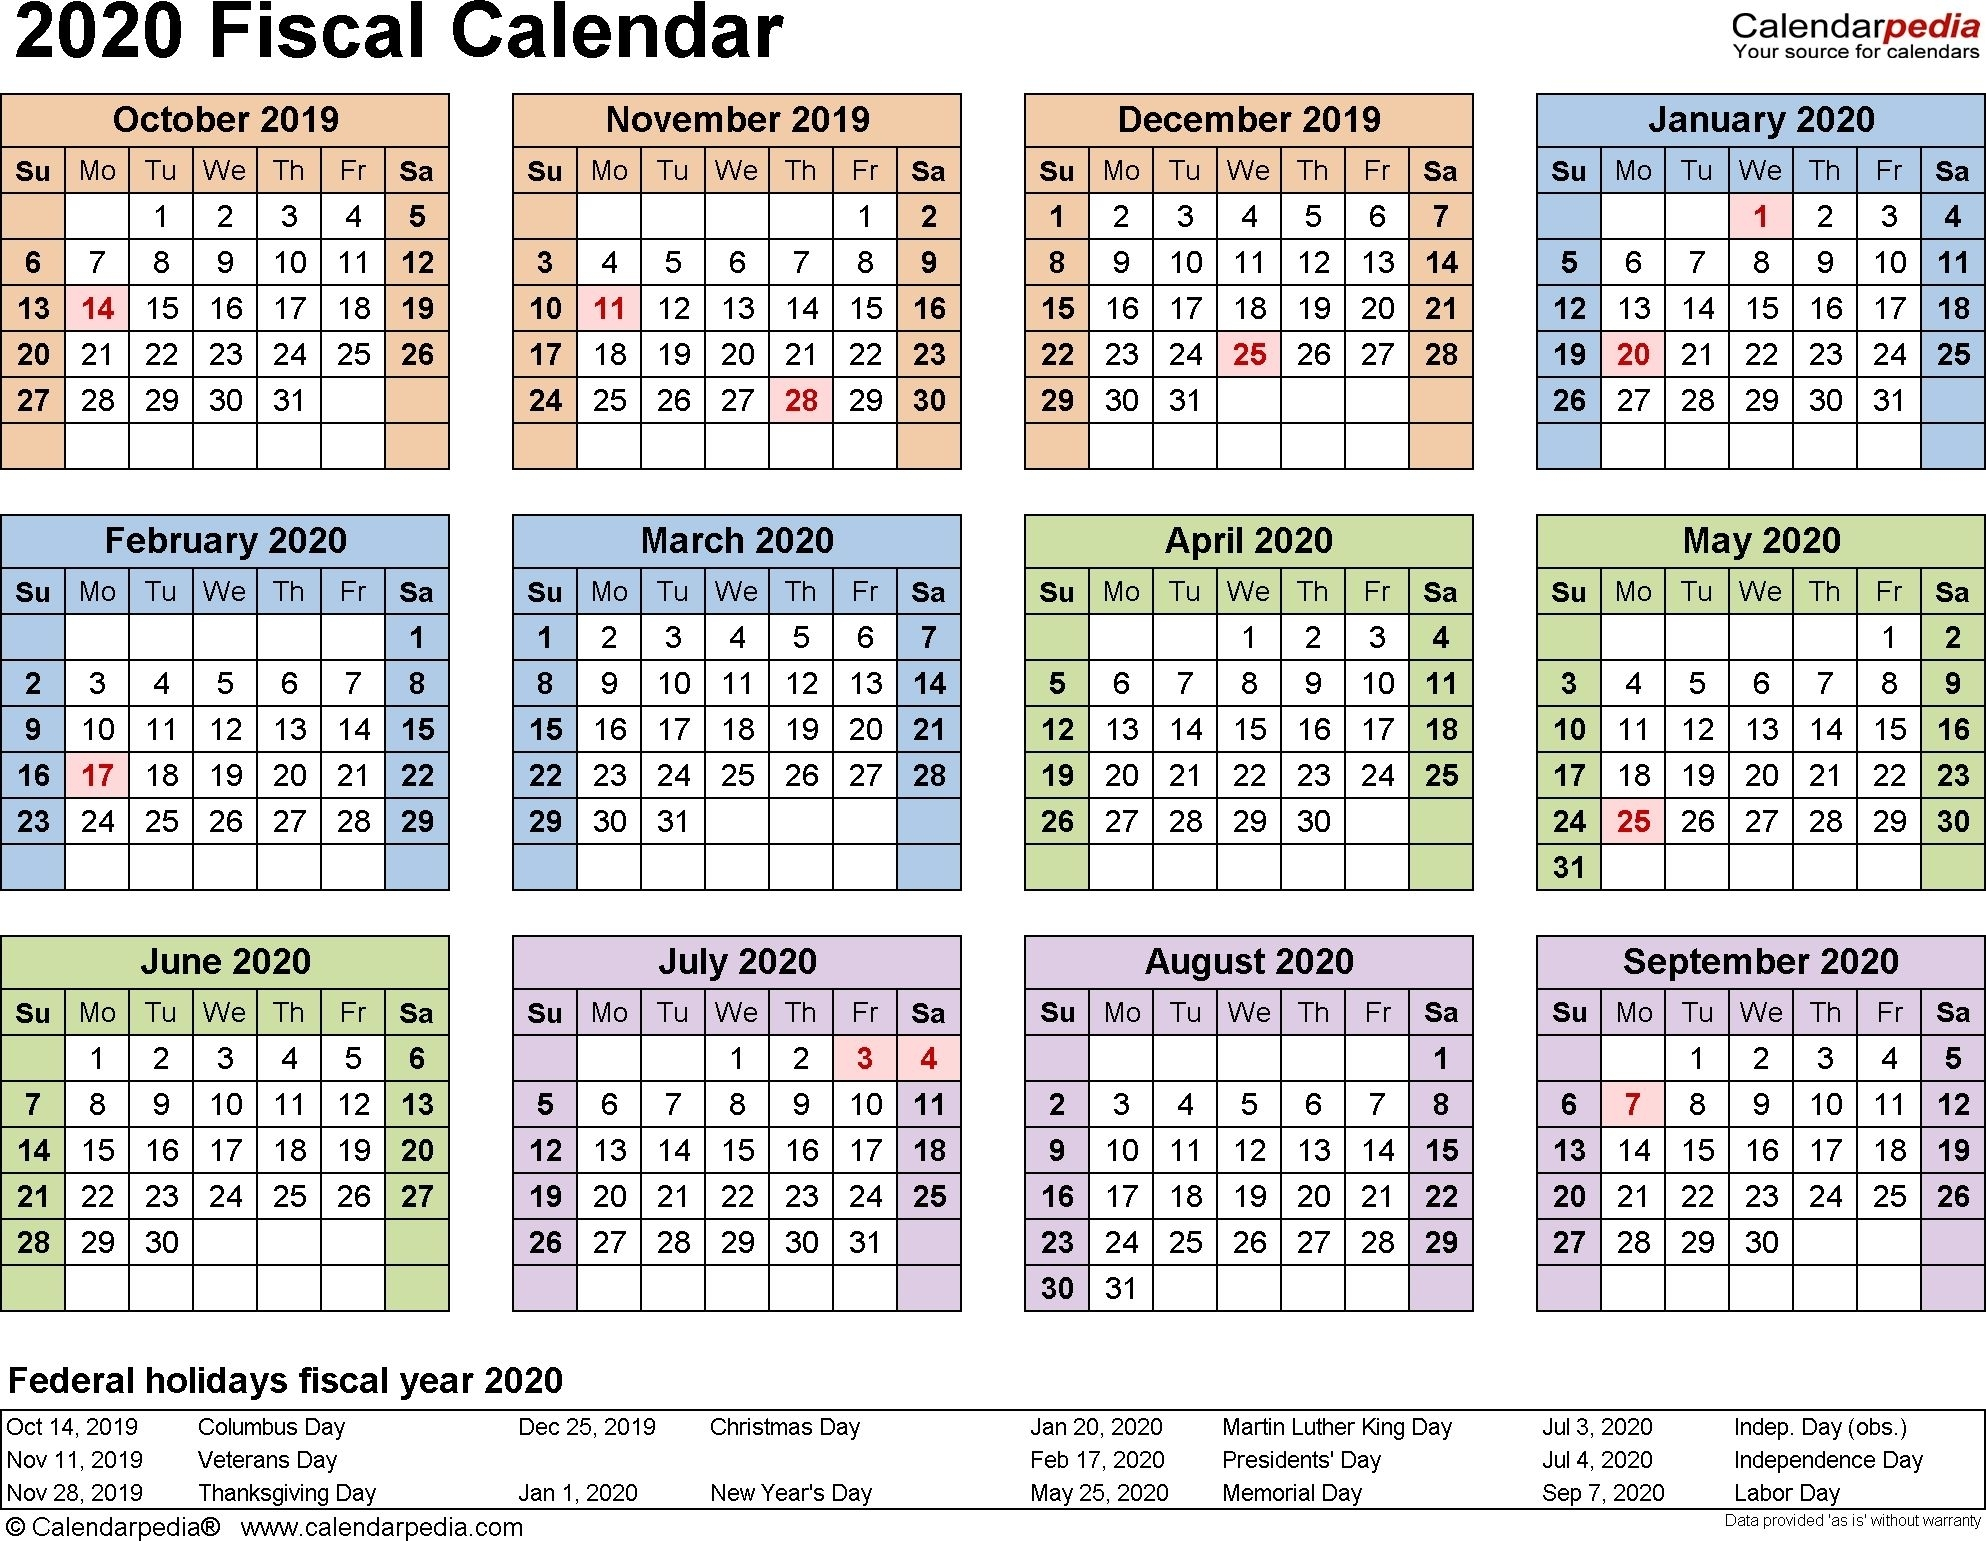 2019 2020 Financial Year Calendar In 2020 | Payroll Calendar inside Financial Calendar 2019/2020 Week Number 25